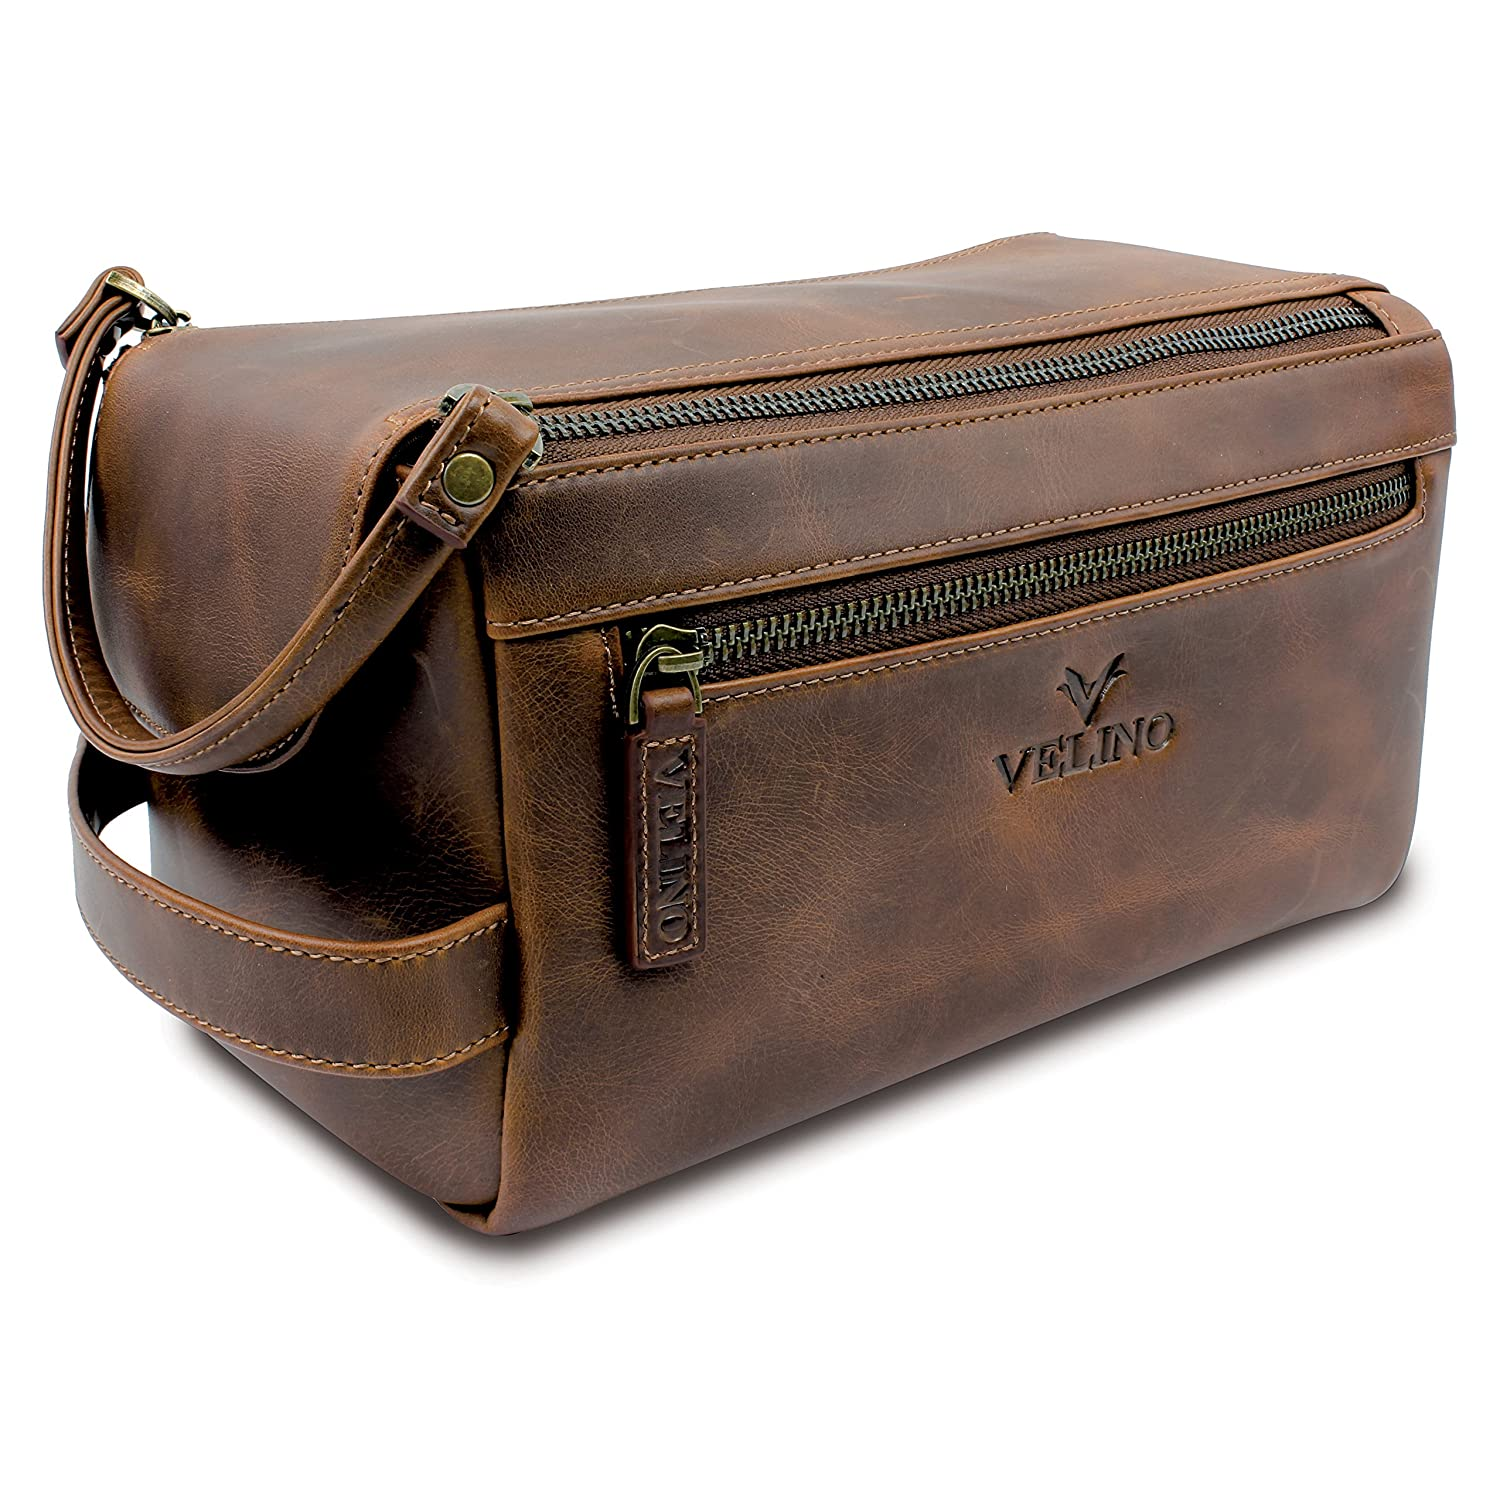 9bbcaa76f8a4 Amazon.com   Velino Handmade Genuine Buffalo Leather Unisex Toiletry Bag  Travel Dopp Kit Grooming and Shaving Kit ~ Gift for Men Women ~ Hanging  Zippered ...